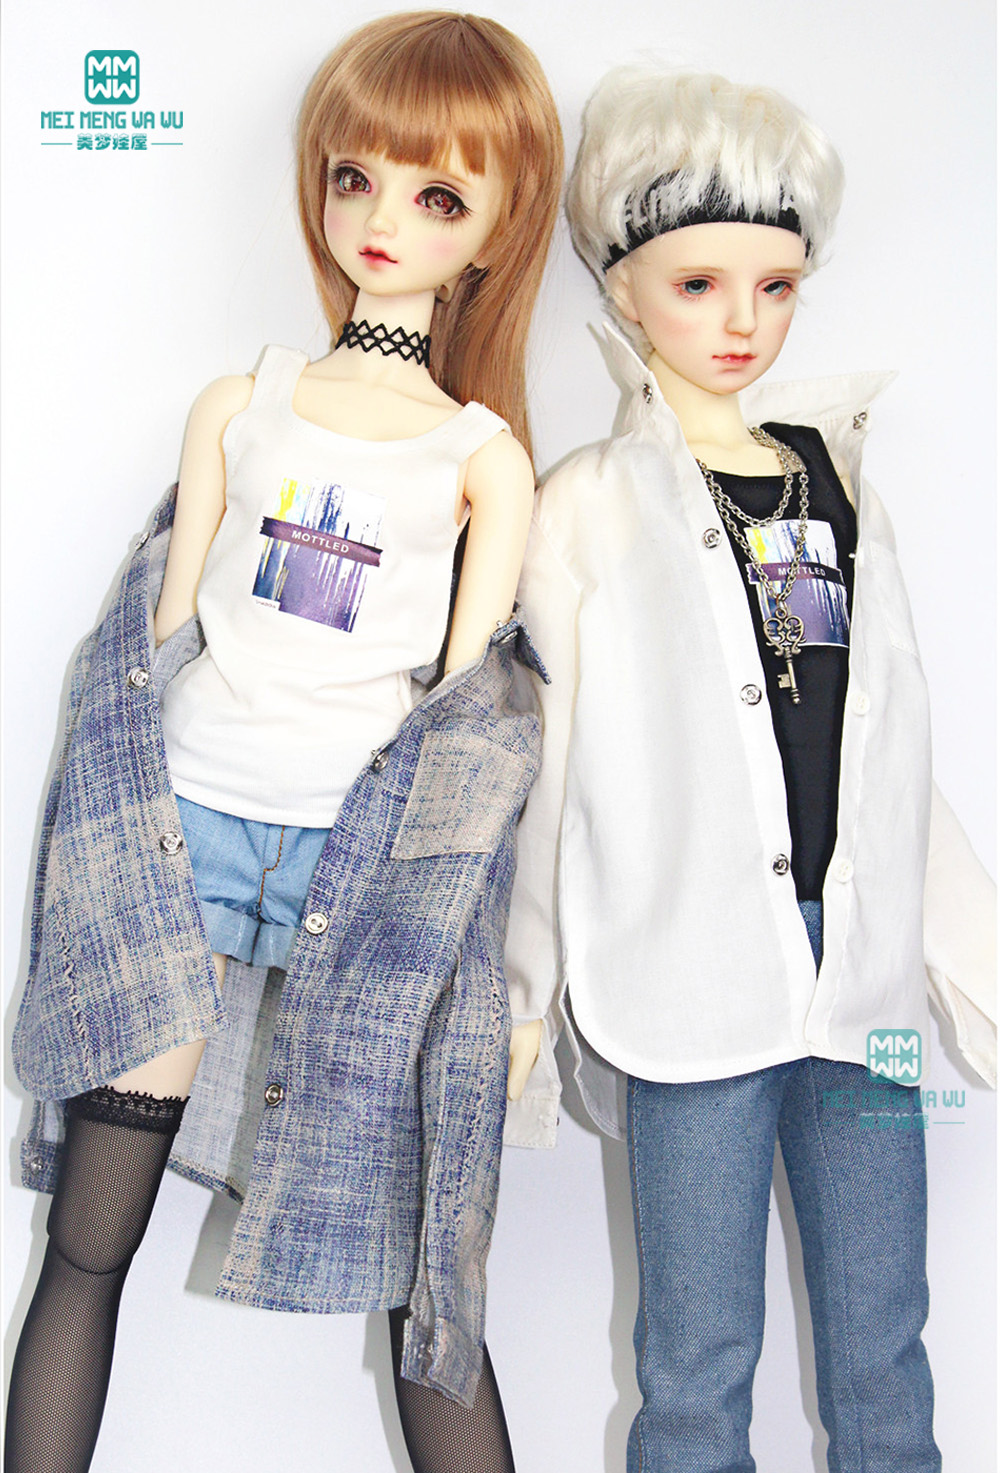 BJD Doll Clothes Fits 1/3 BJD Doll Fashion Knitted Vest With Multiple Patterns